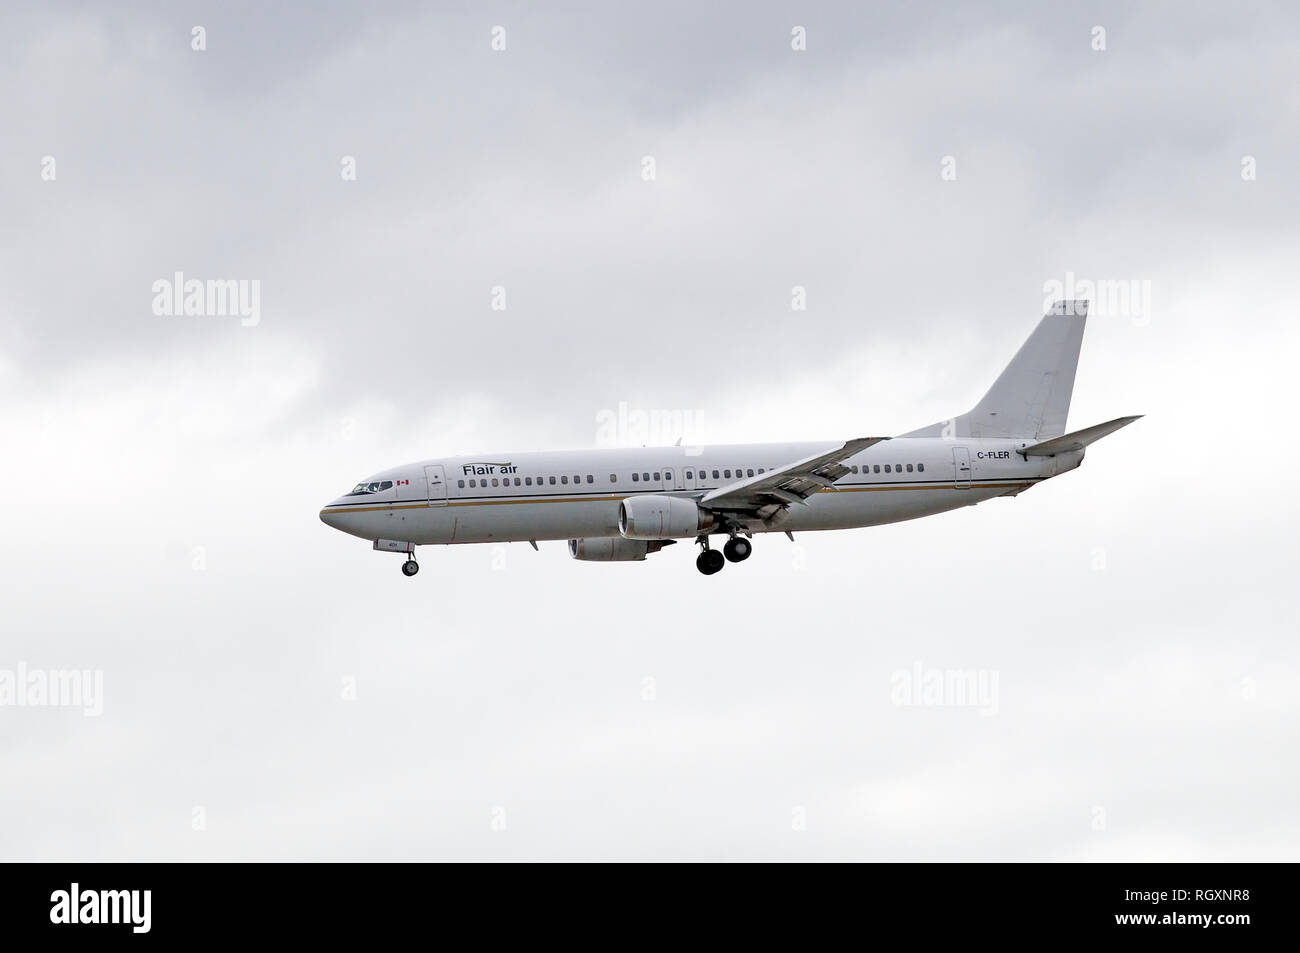 Flair air airplane coming in for a landing at Vancouver International Airport,  Vancouver, British Columbia, Canada - Stock Image